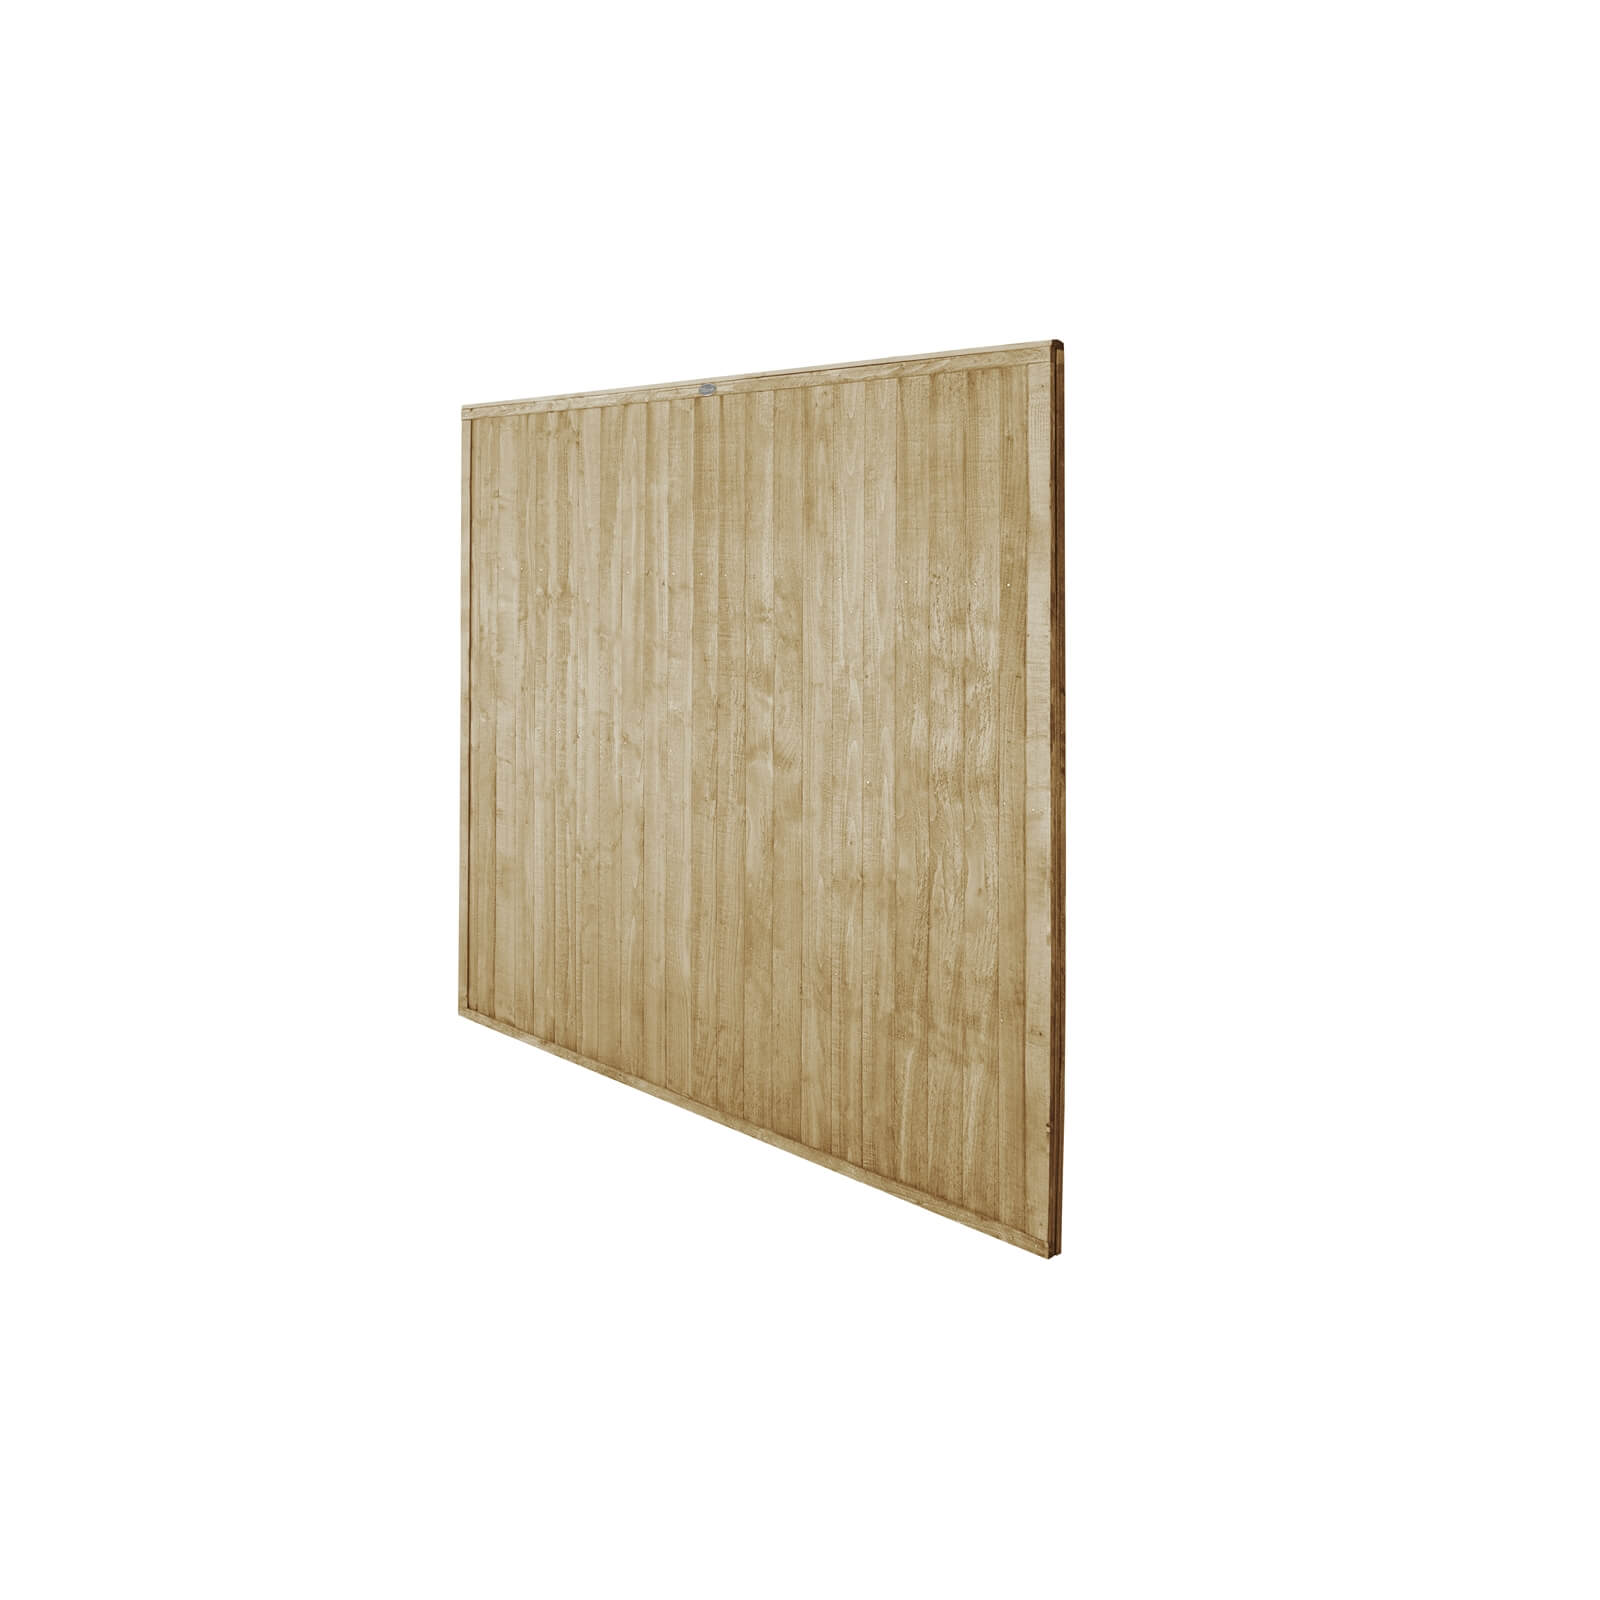 6ft x 6ft (1.83m x 1.83m) Pressure Treated Closeboard Fence Panel - Pack of 3